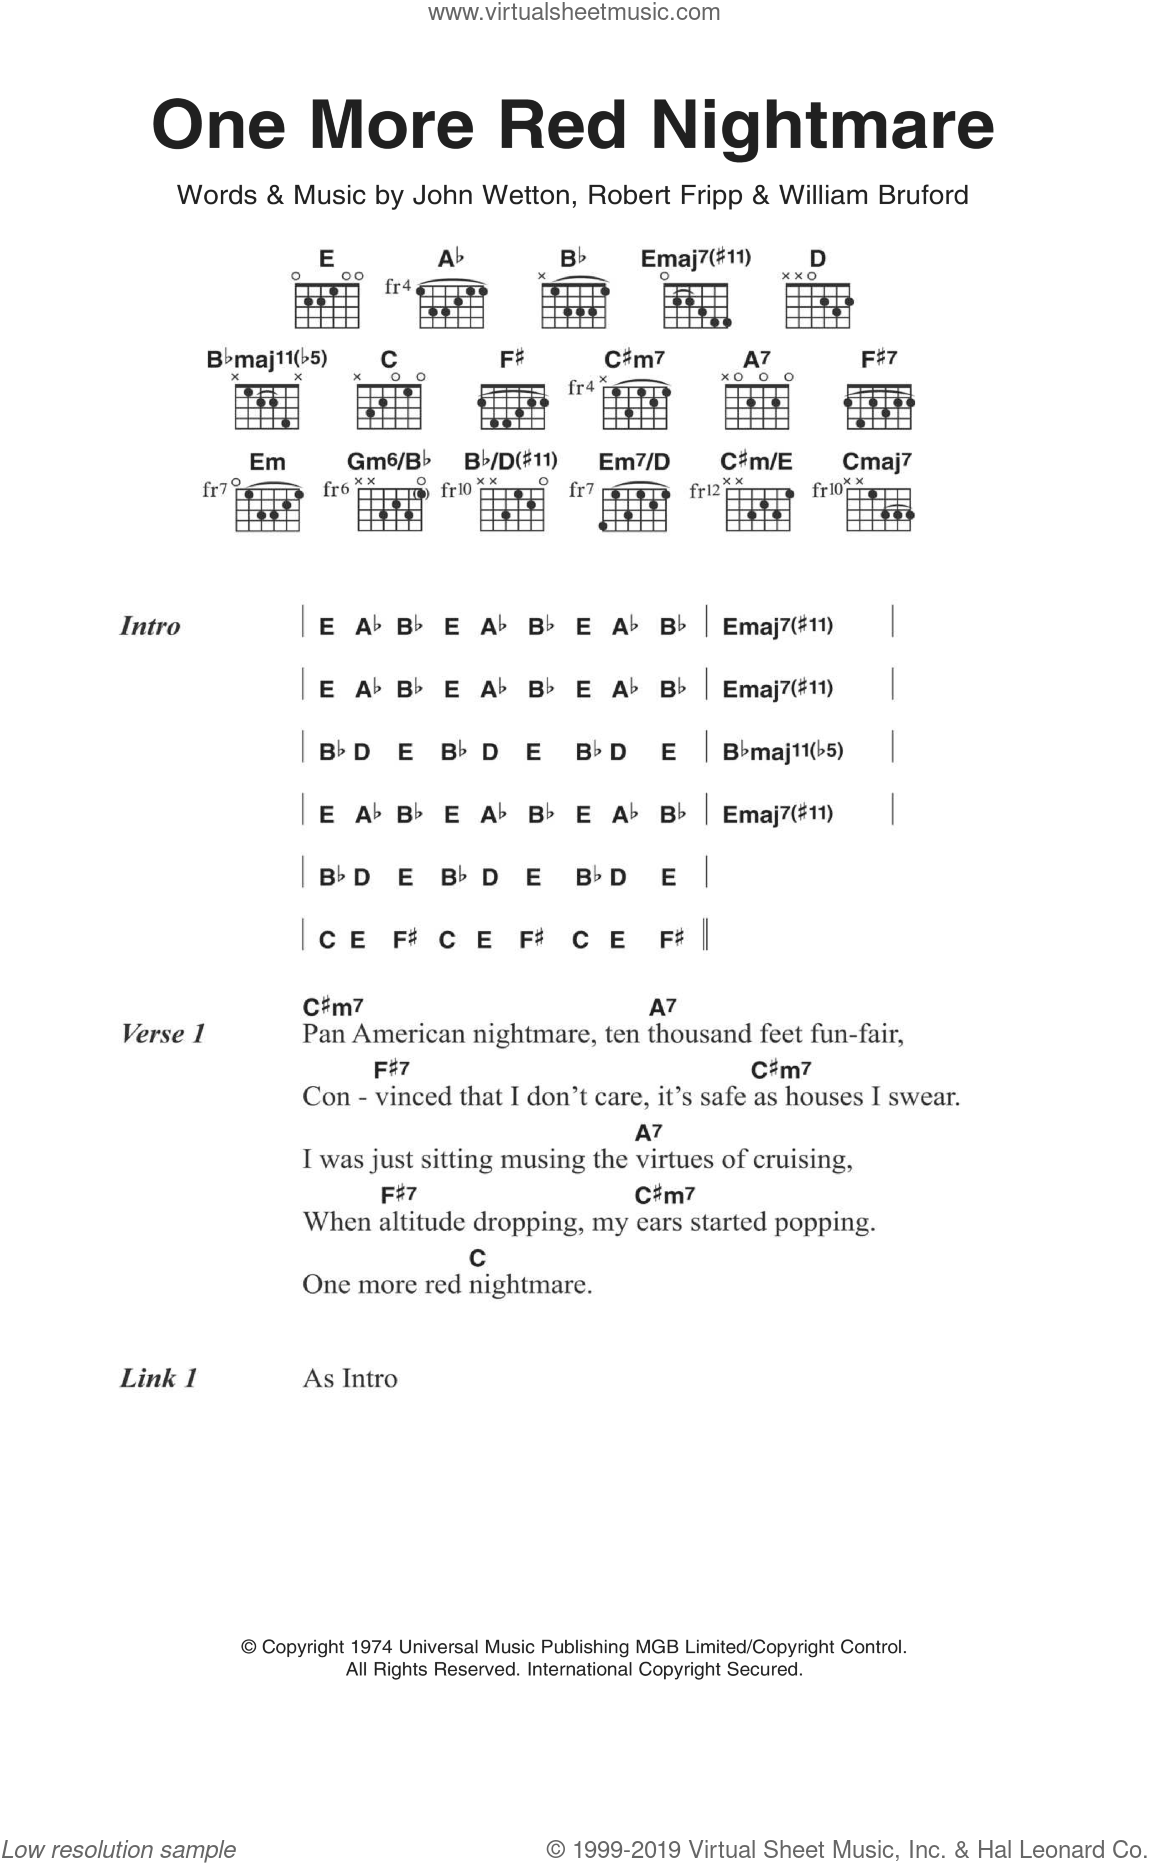 One More Red Nightmare sheet music for guitar (chords) by King Crimson, John Wetton, Robert Fripp and William Bruford, intermediate skill level